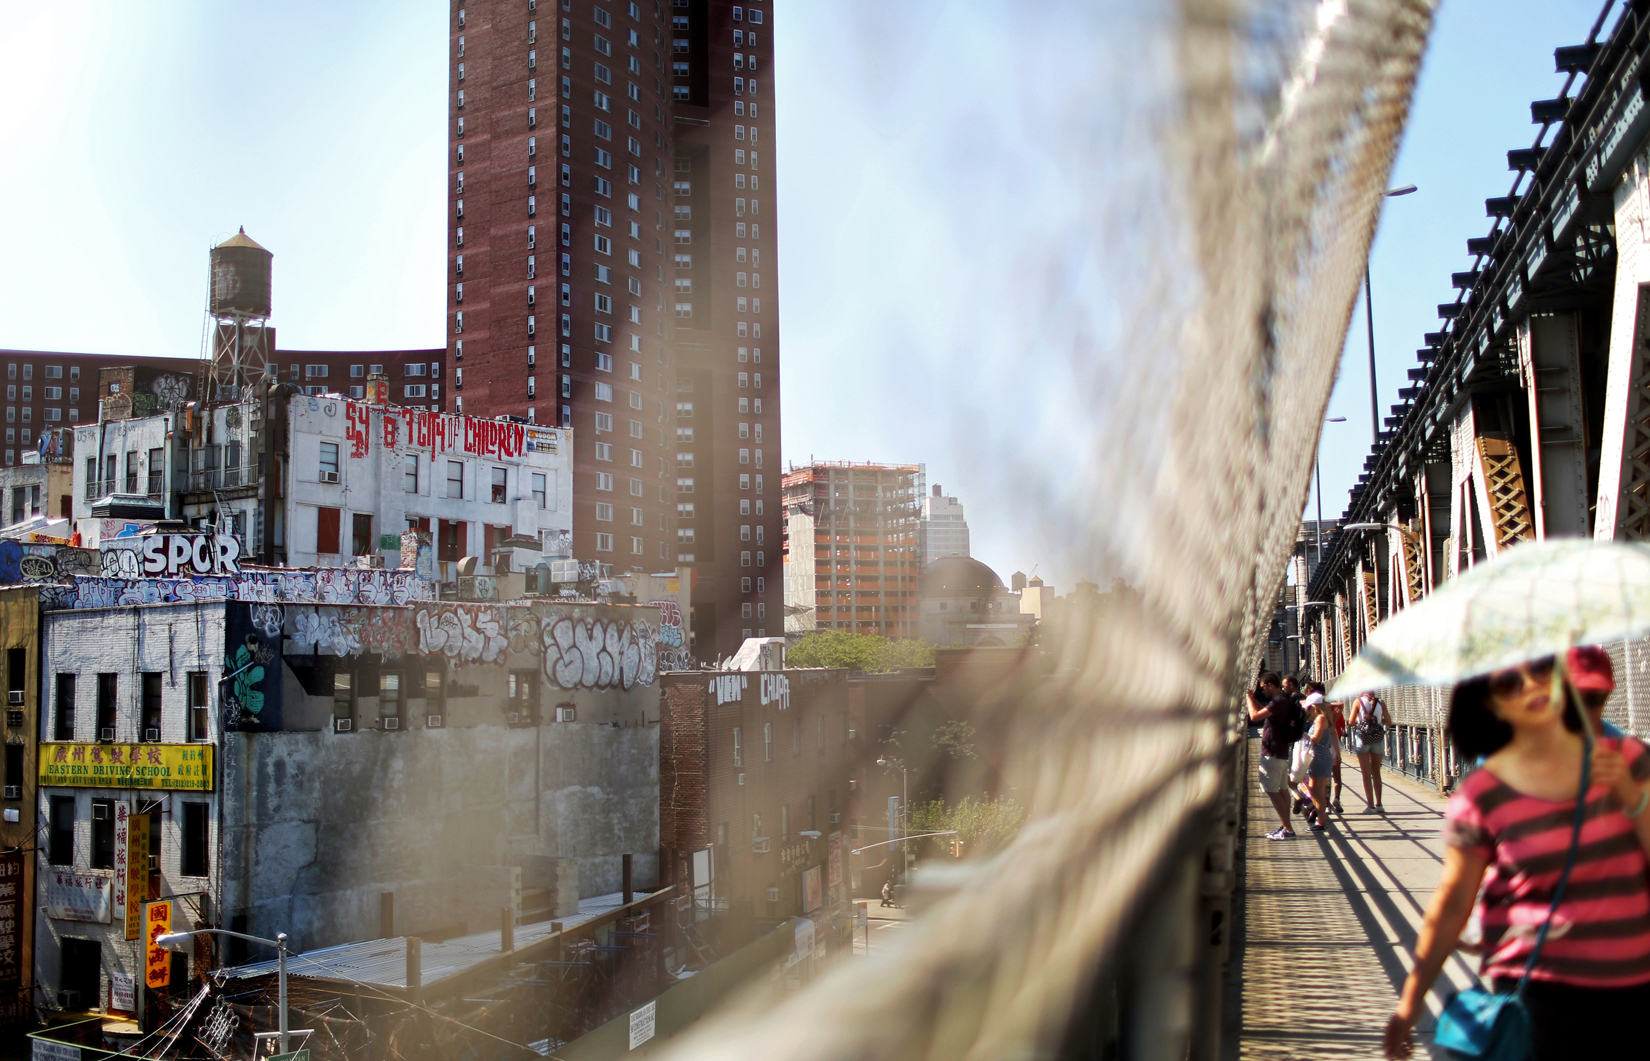 A pedestrian shields herself from the afternoon sun walking across the Manhattan bridge toward Brooklyn, with the graffitied buildings of Chinatown in the background, in New York, New York, on July 16, 2015. (For The New York Times)(For The New York Times)